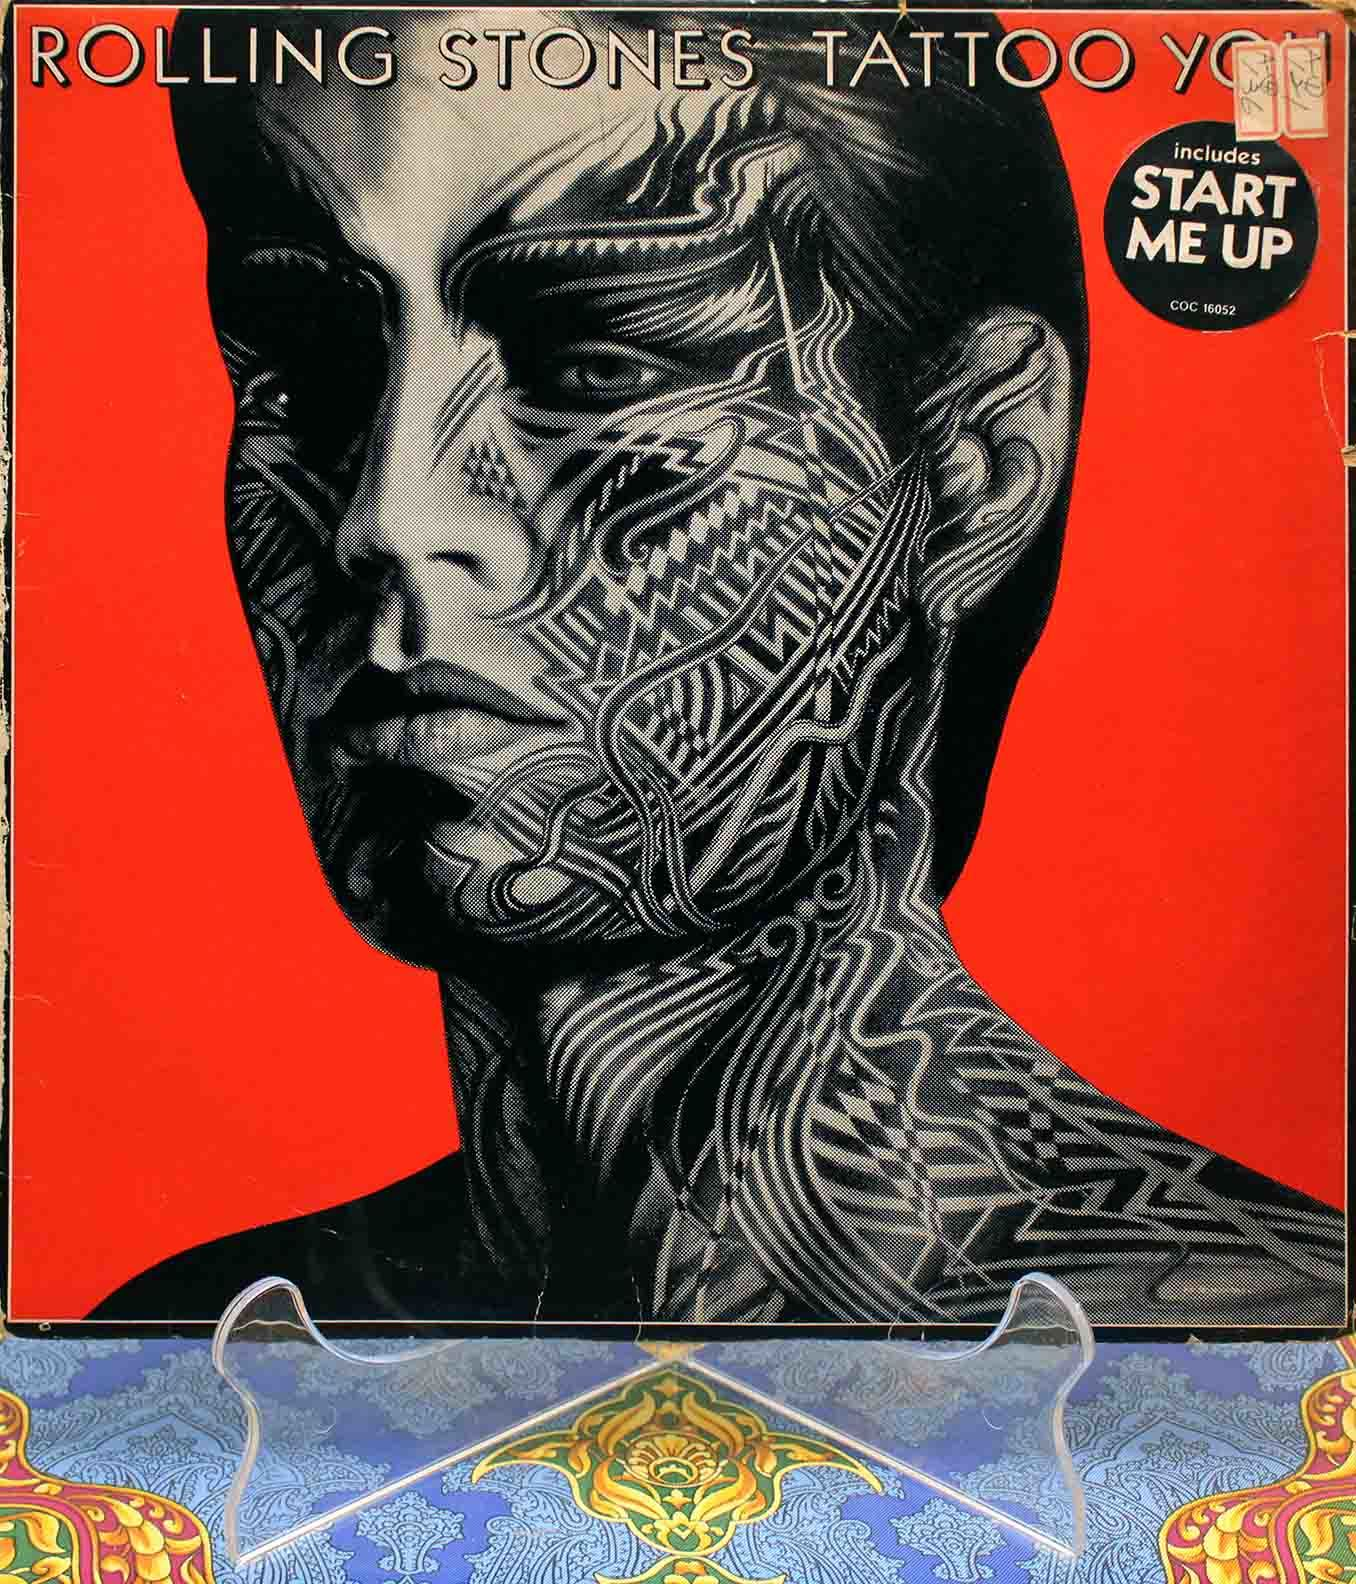 The Rolling Stones – Tattoo You 01